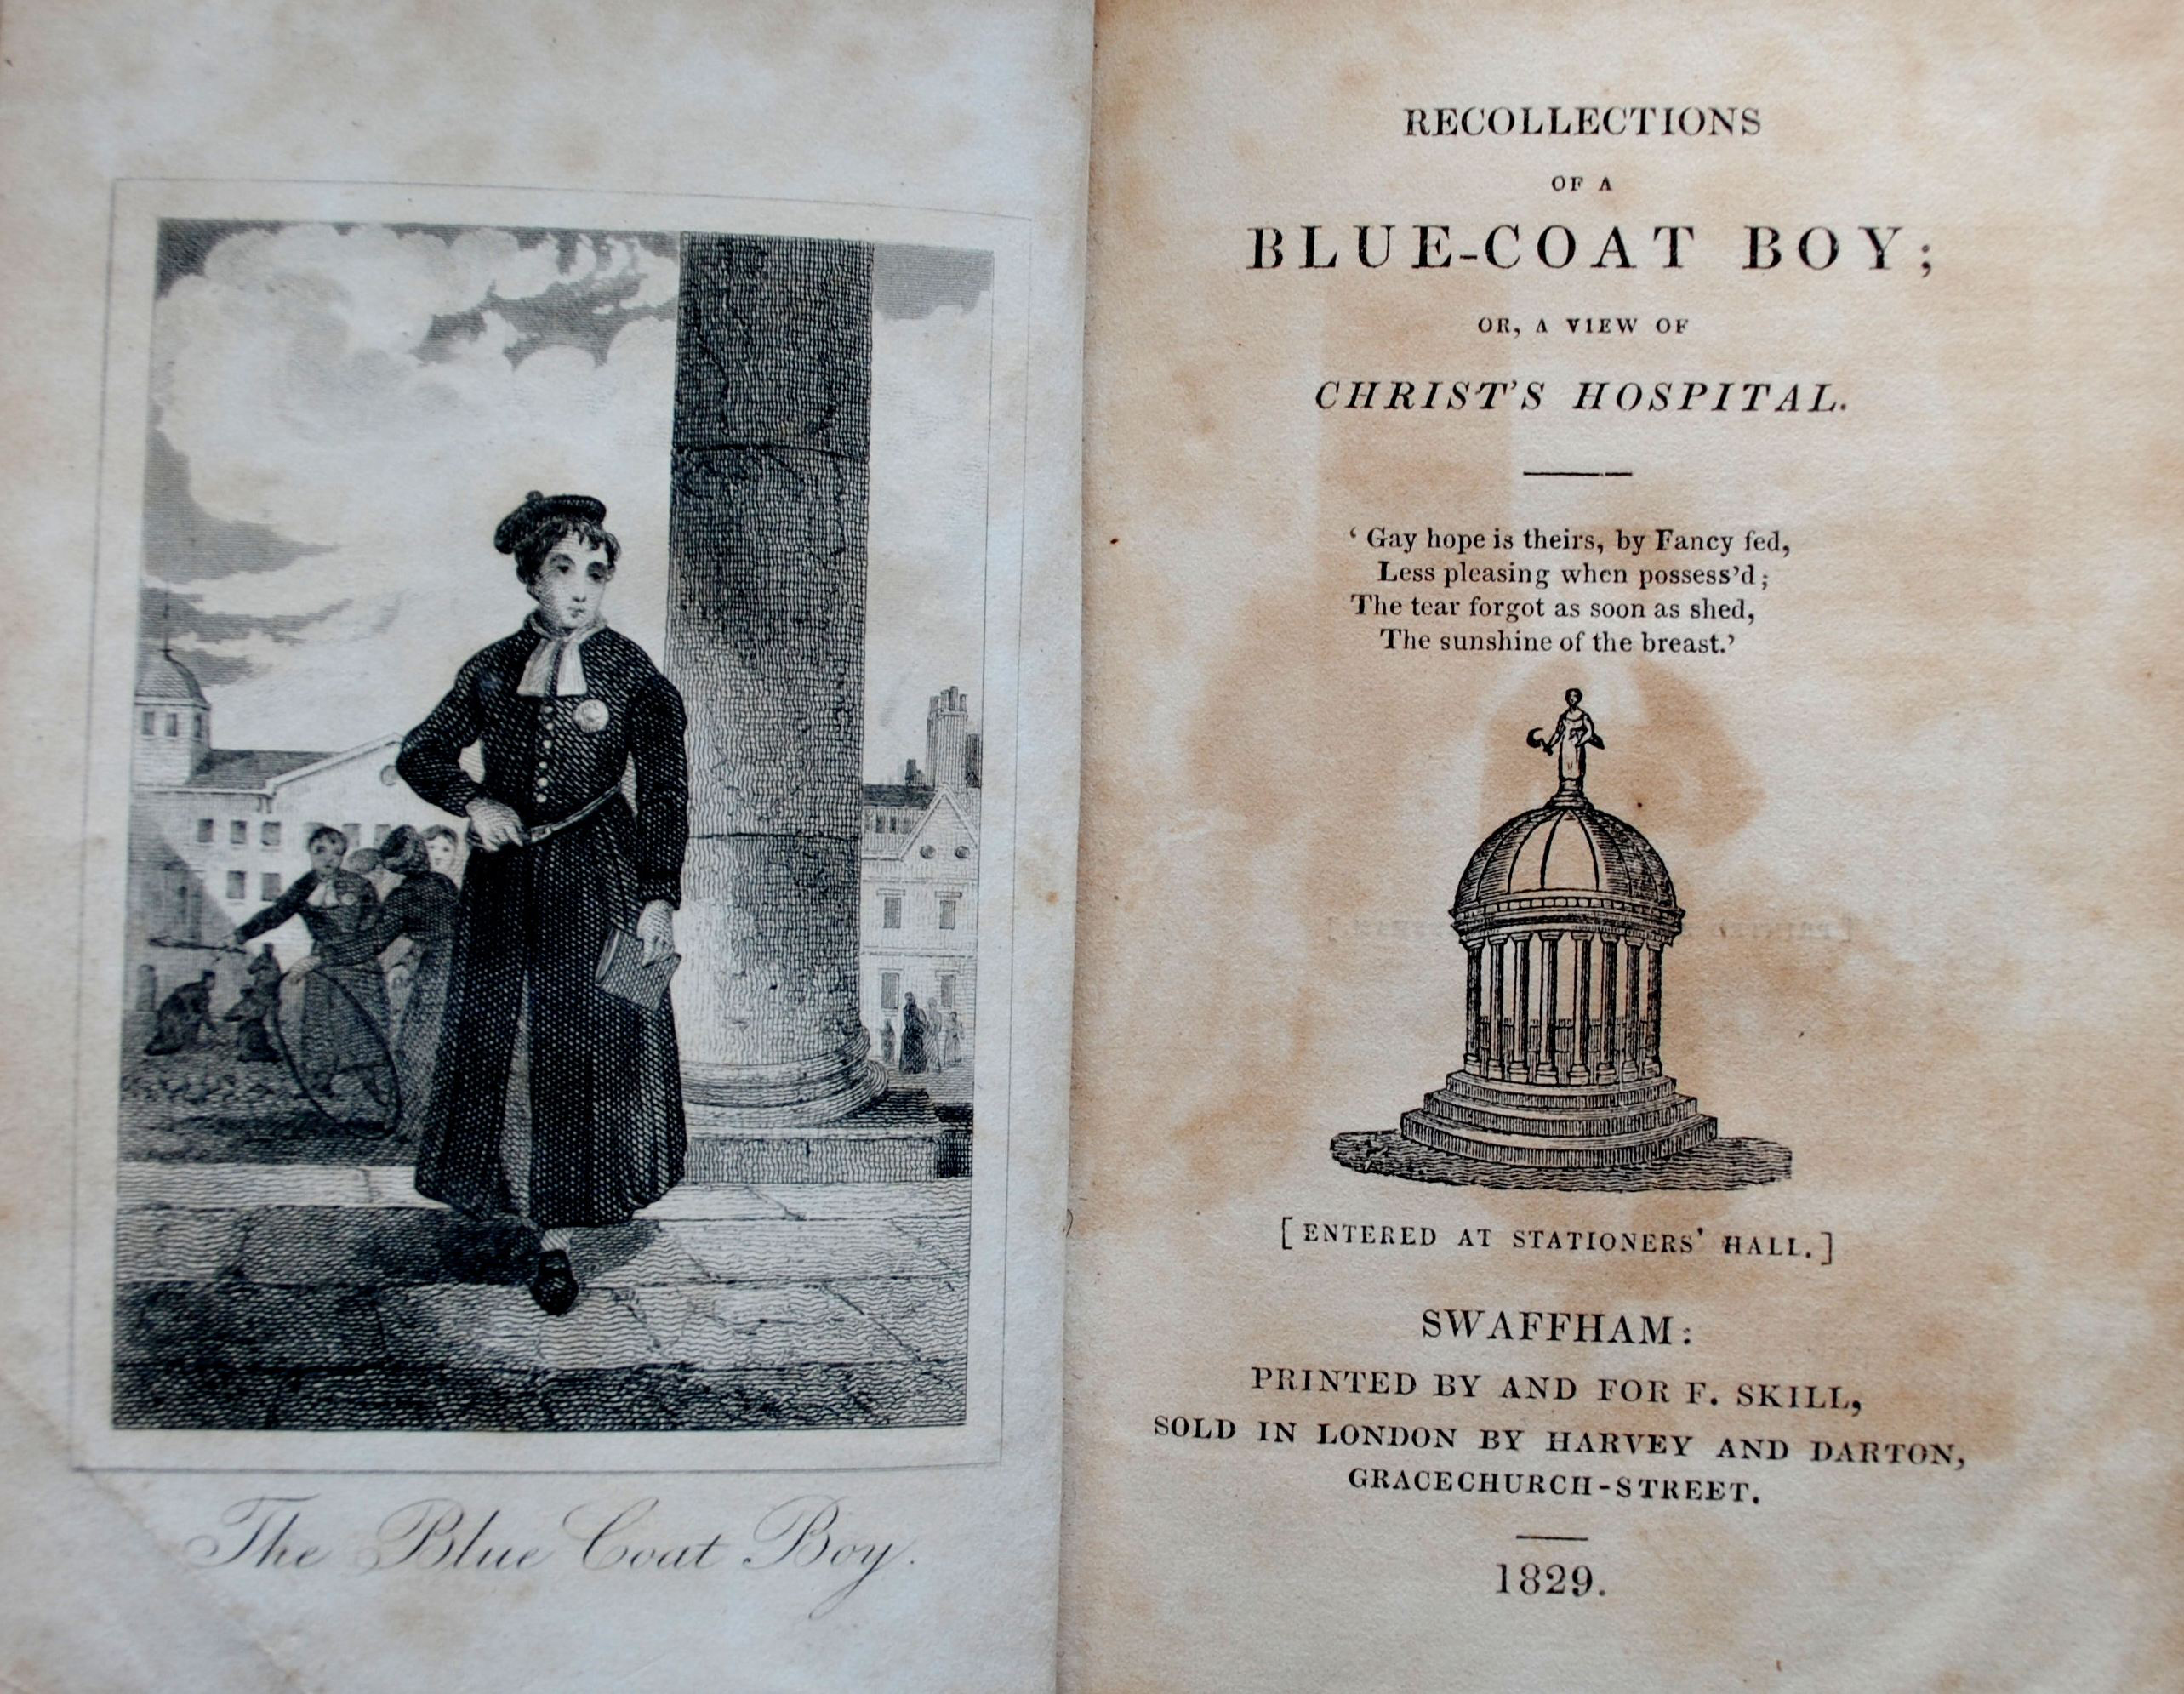 Recollections of a Blue-coat Boy 1829